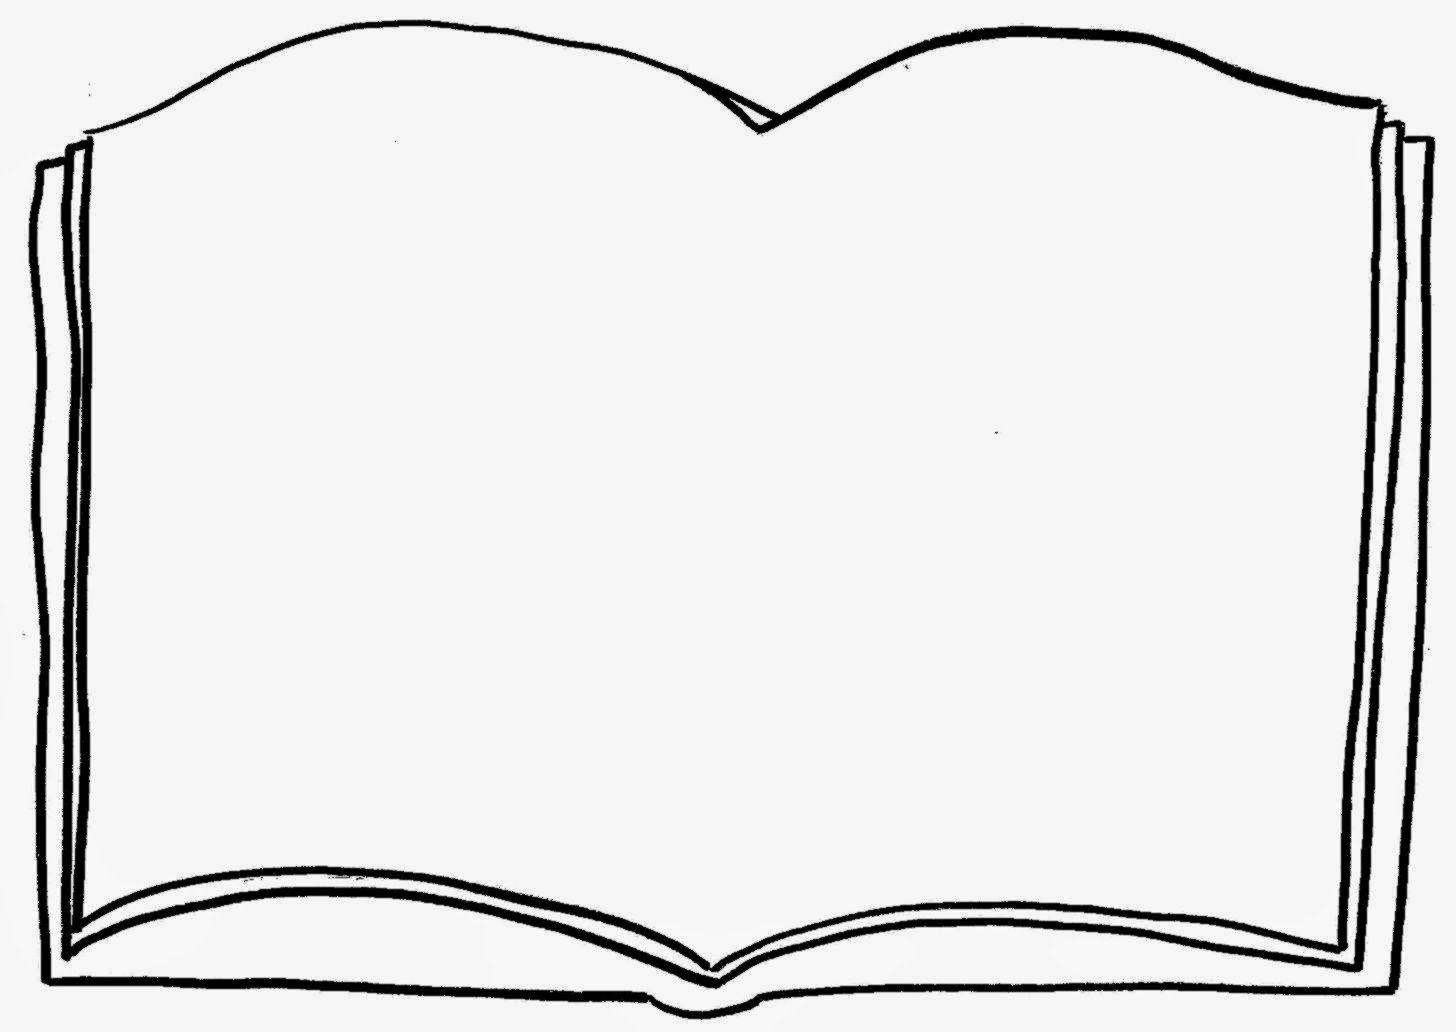 Free coloring pages clipart clip art royalty free library Open book coloring page free coloring pages clip art - Clipartix clip art royalty free library